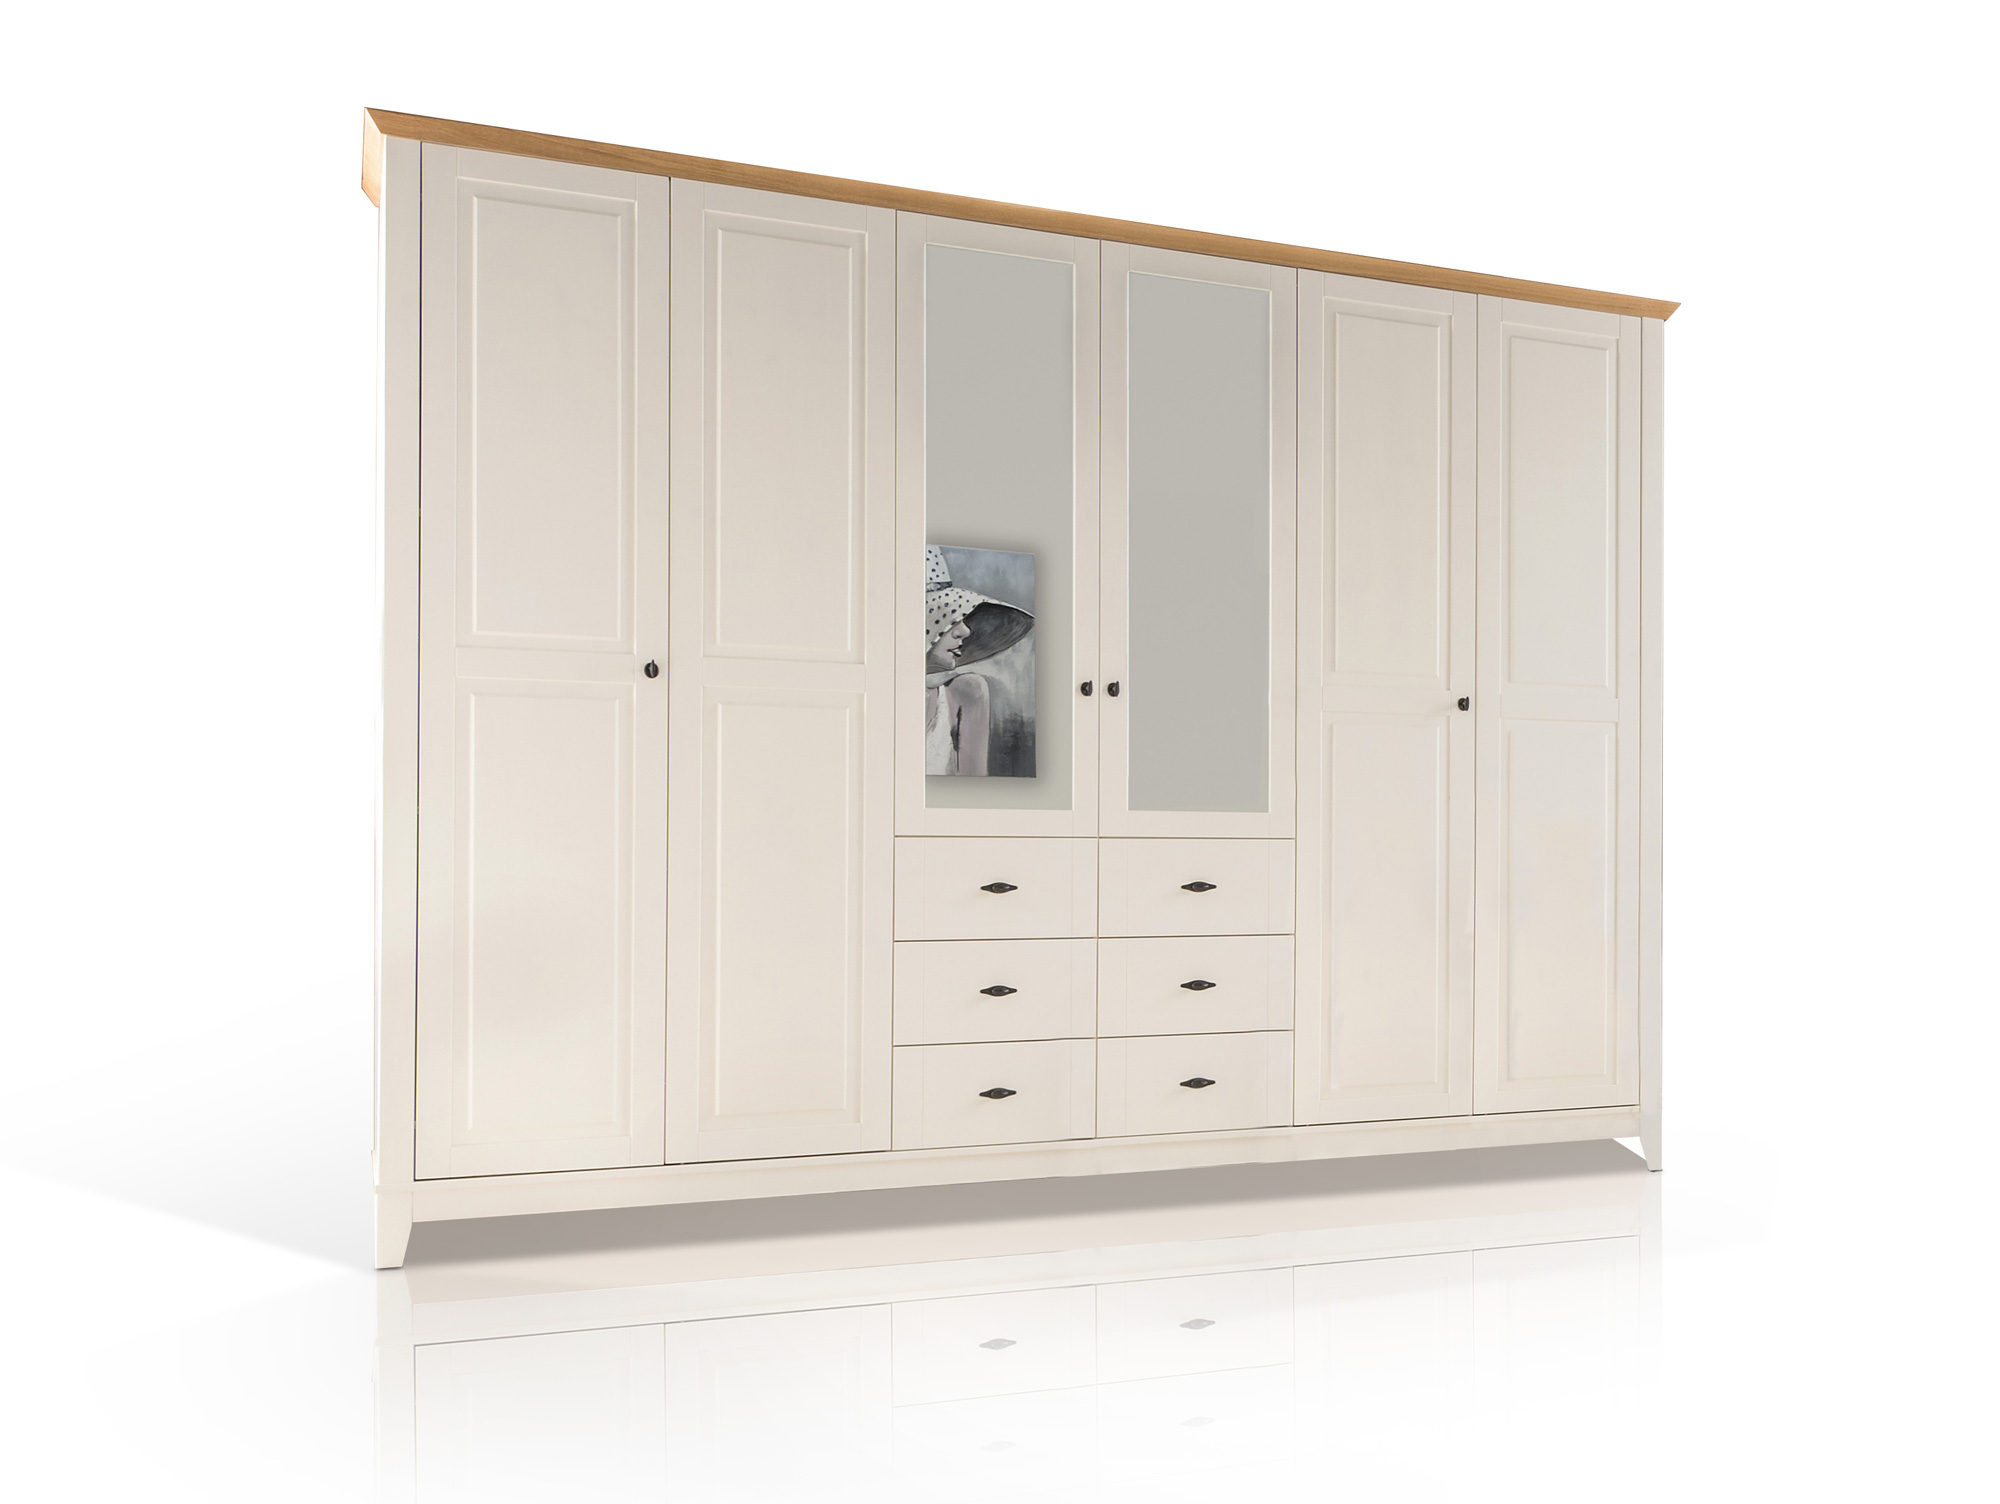 emilia massivholz kleiderschrank kiefer creme absetzung eiche massiv 276 cm 6 t rig. Black Bedroom Furniture Sets. Home Design Ideas